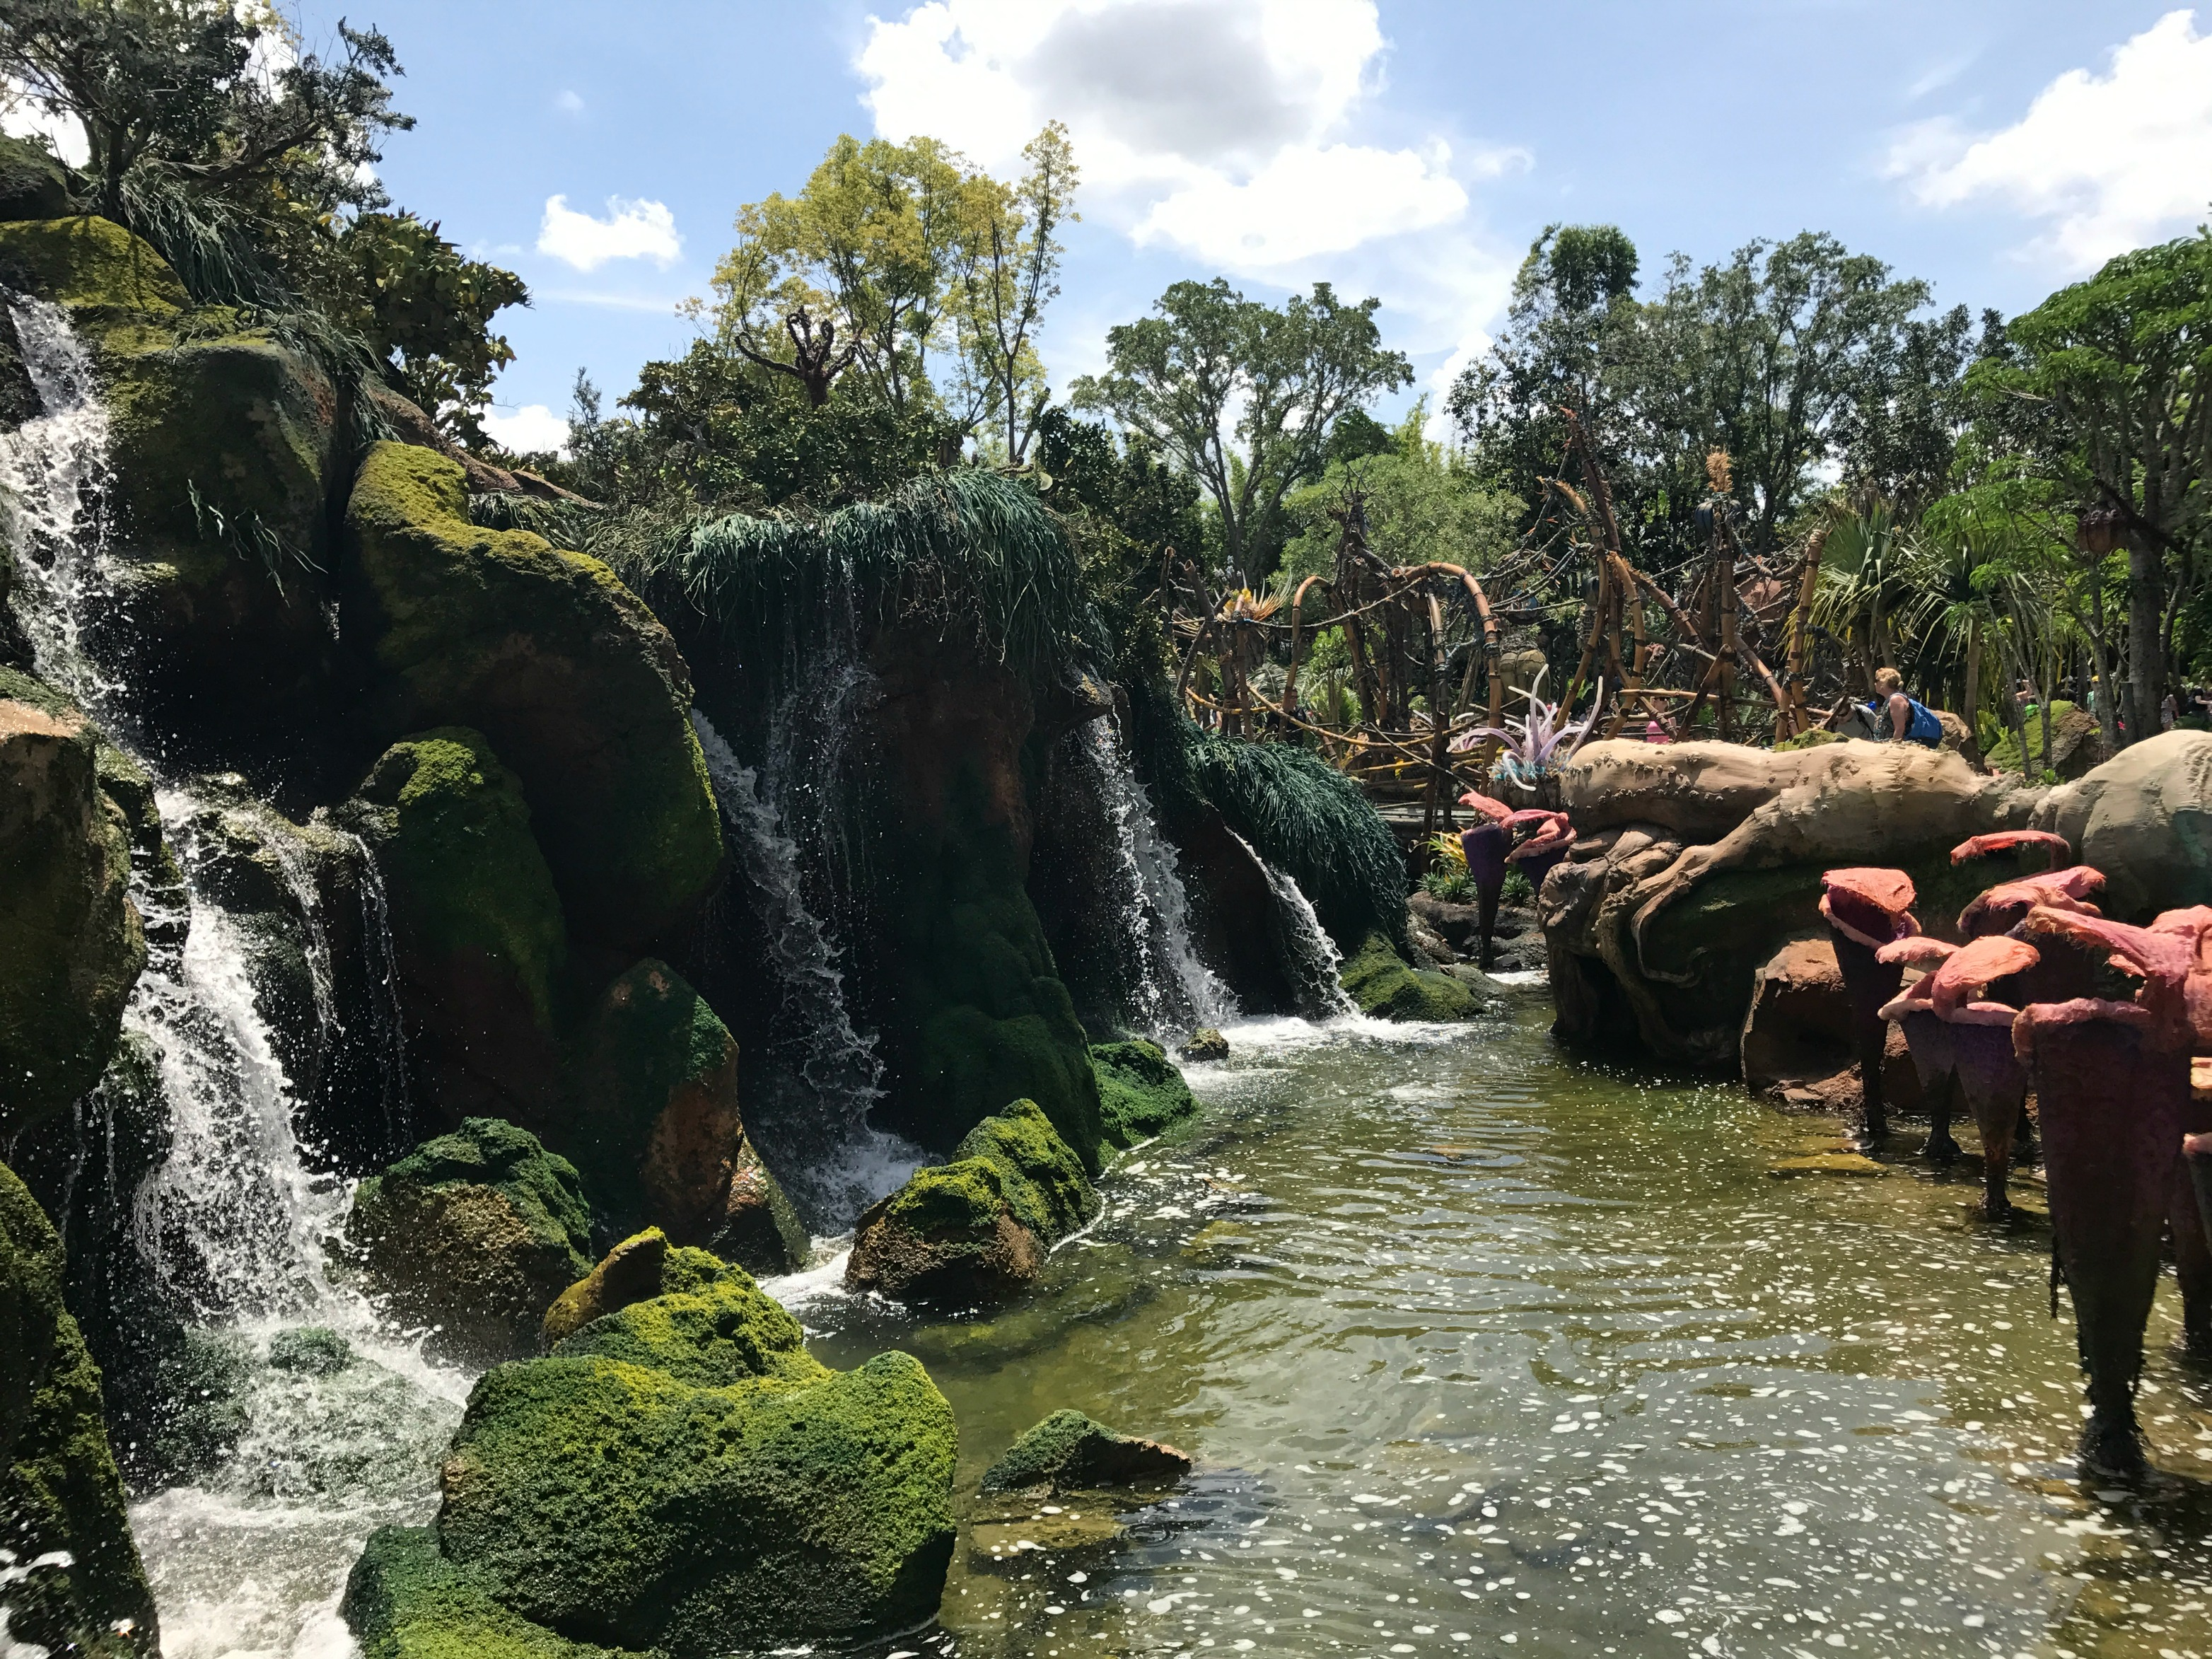 Tips Visiting Disney's Pandora River